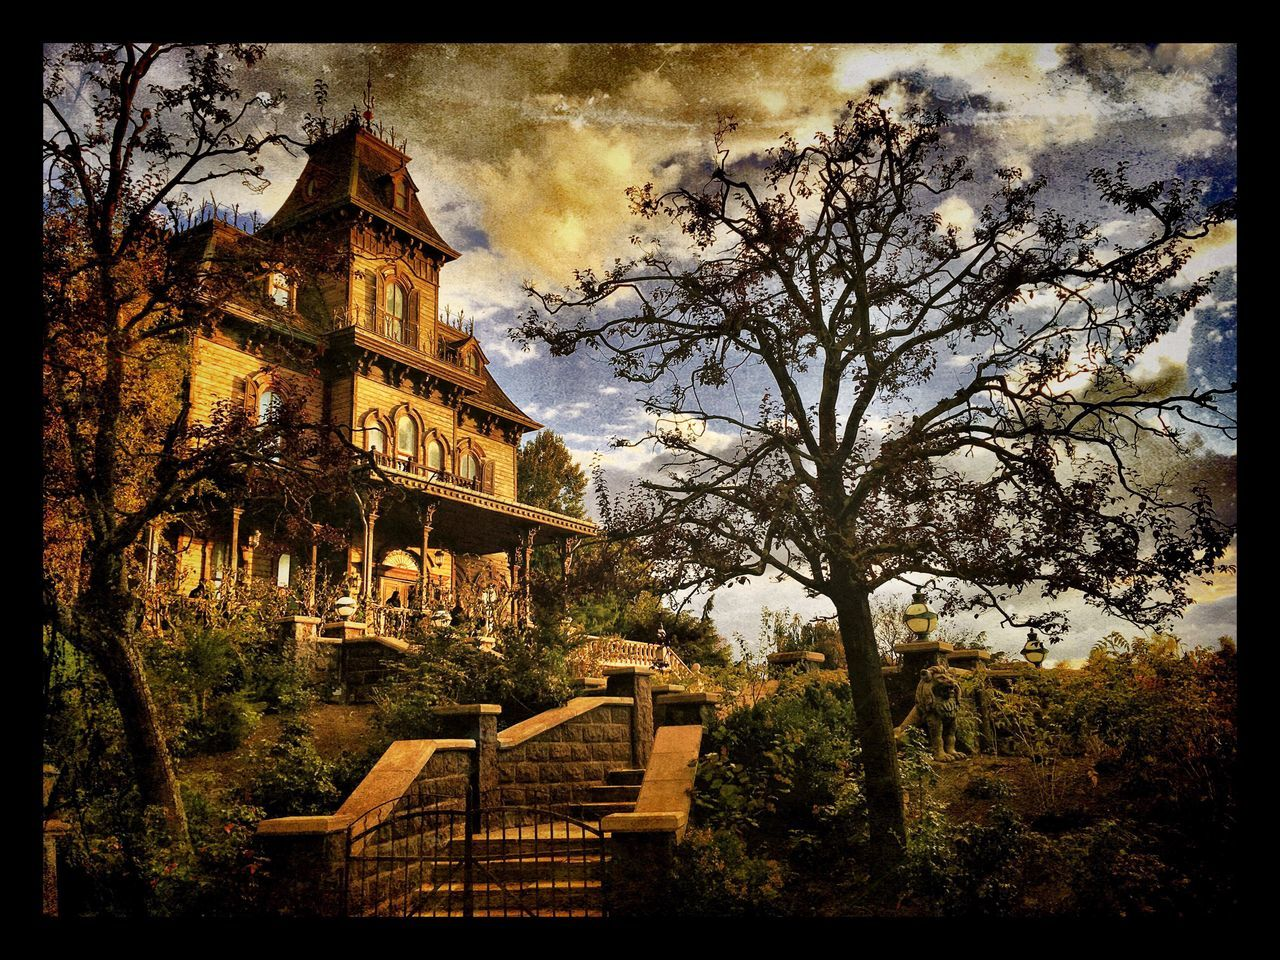 Disneyland Paris Disney Disneyland Phantom Manor IPhoneography Filter